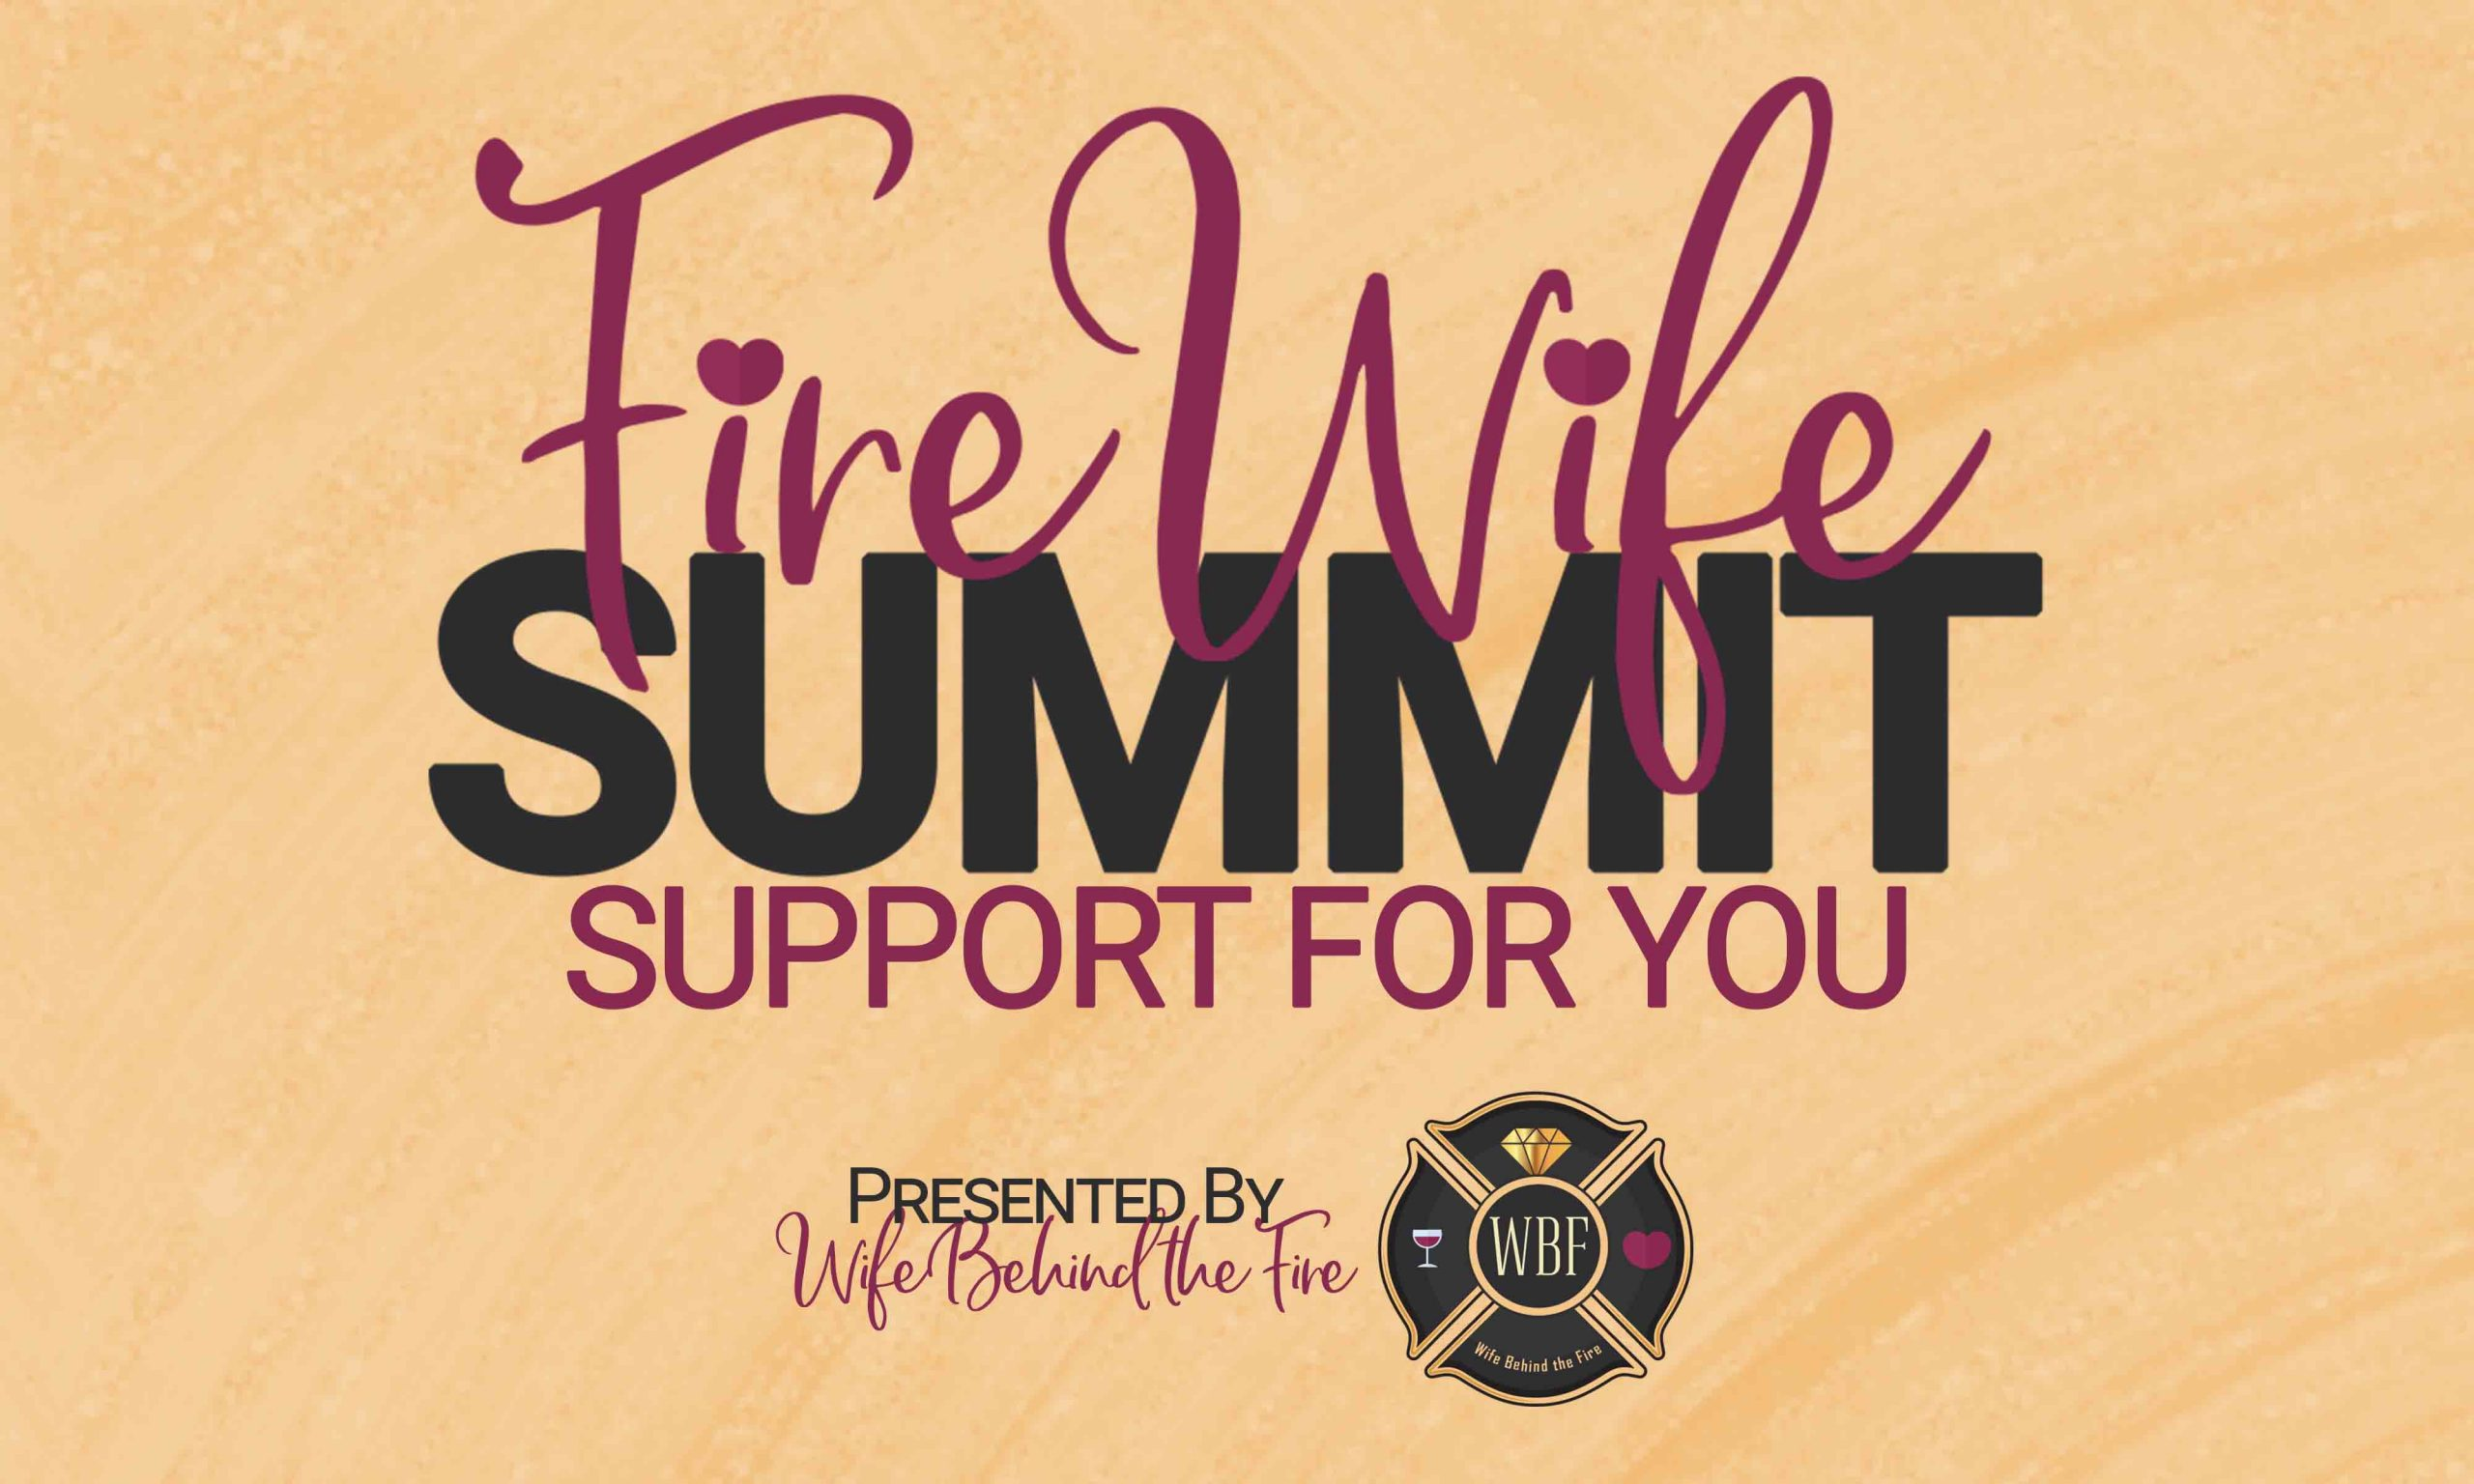 firewife summit support for you